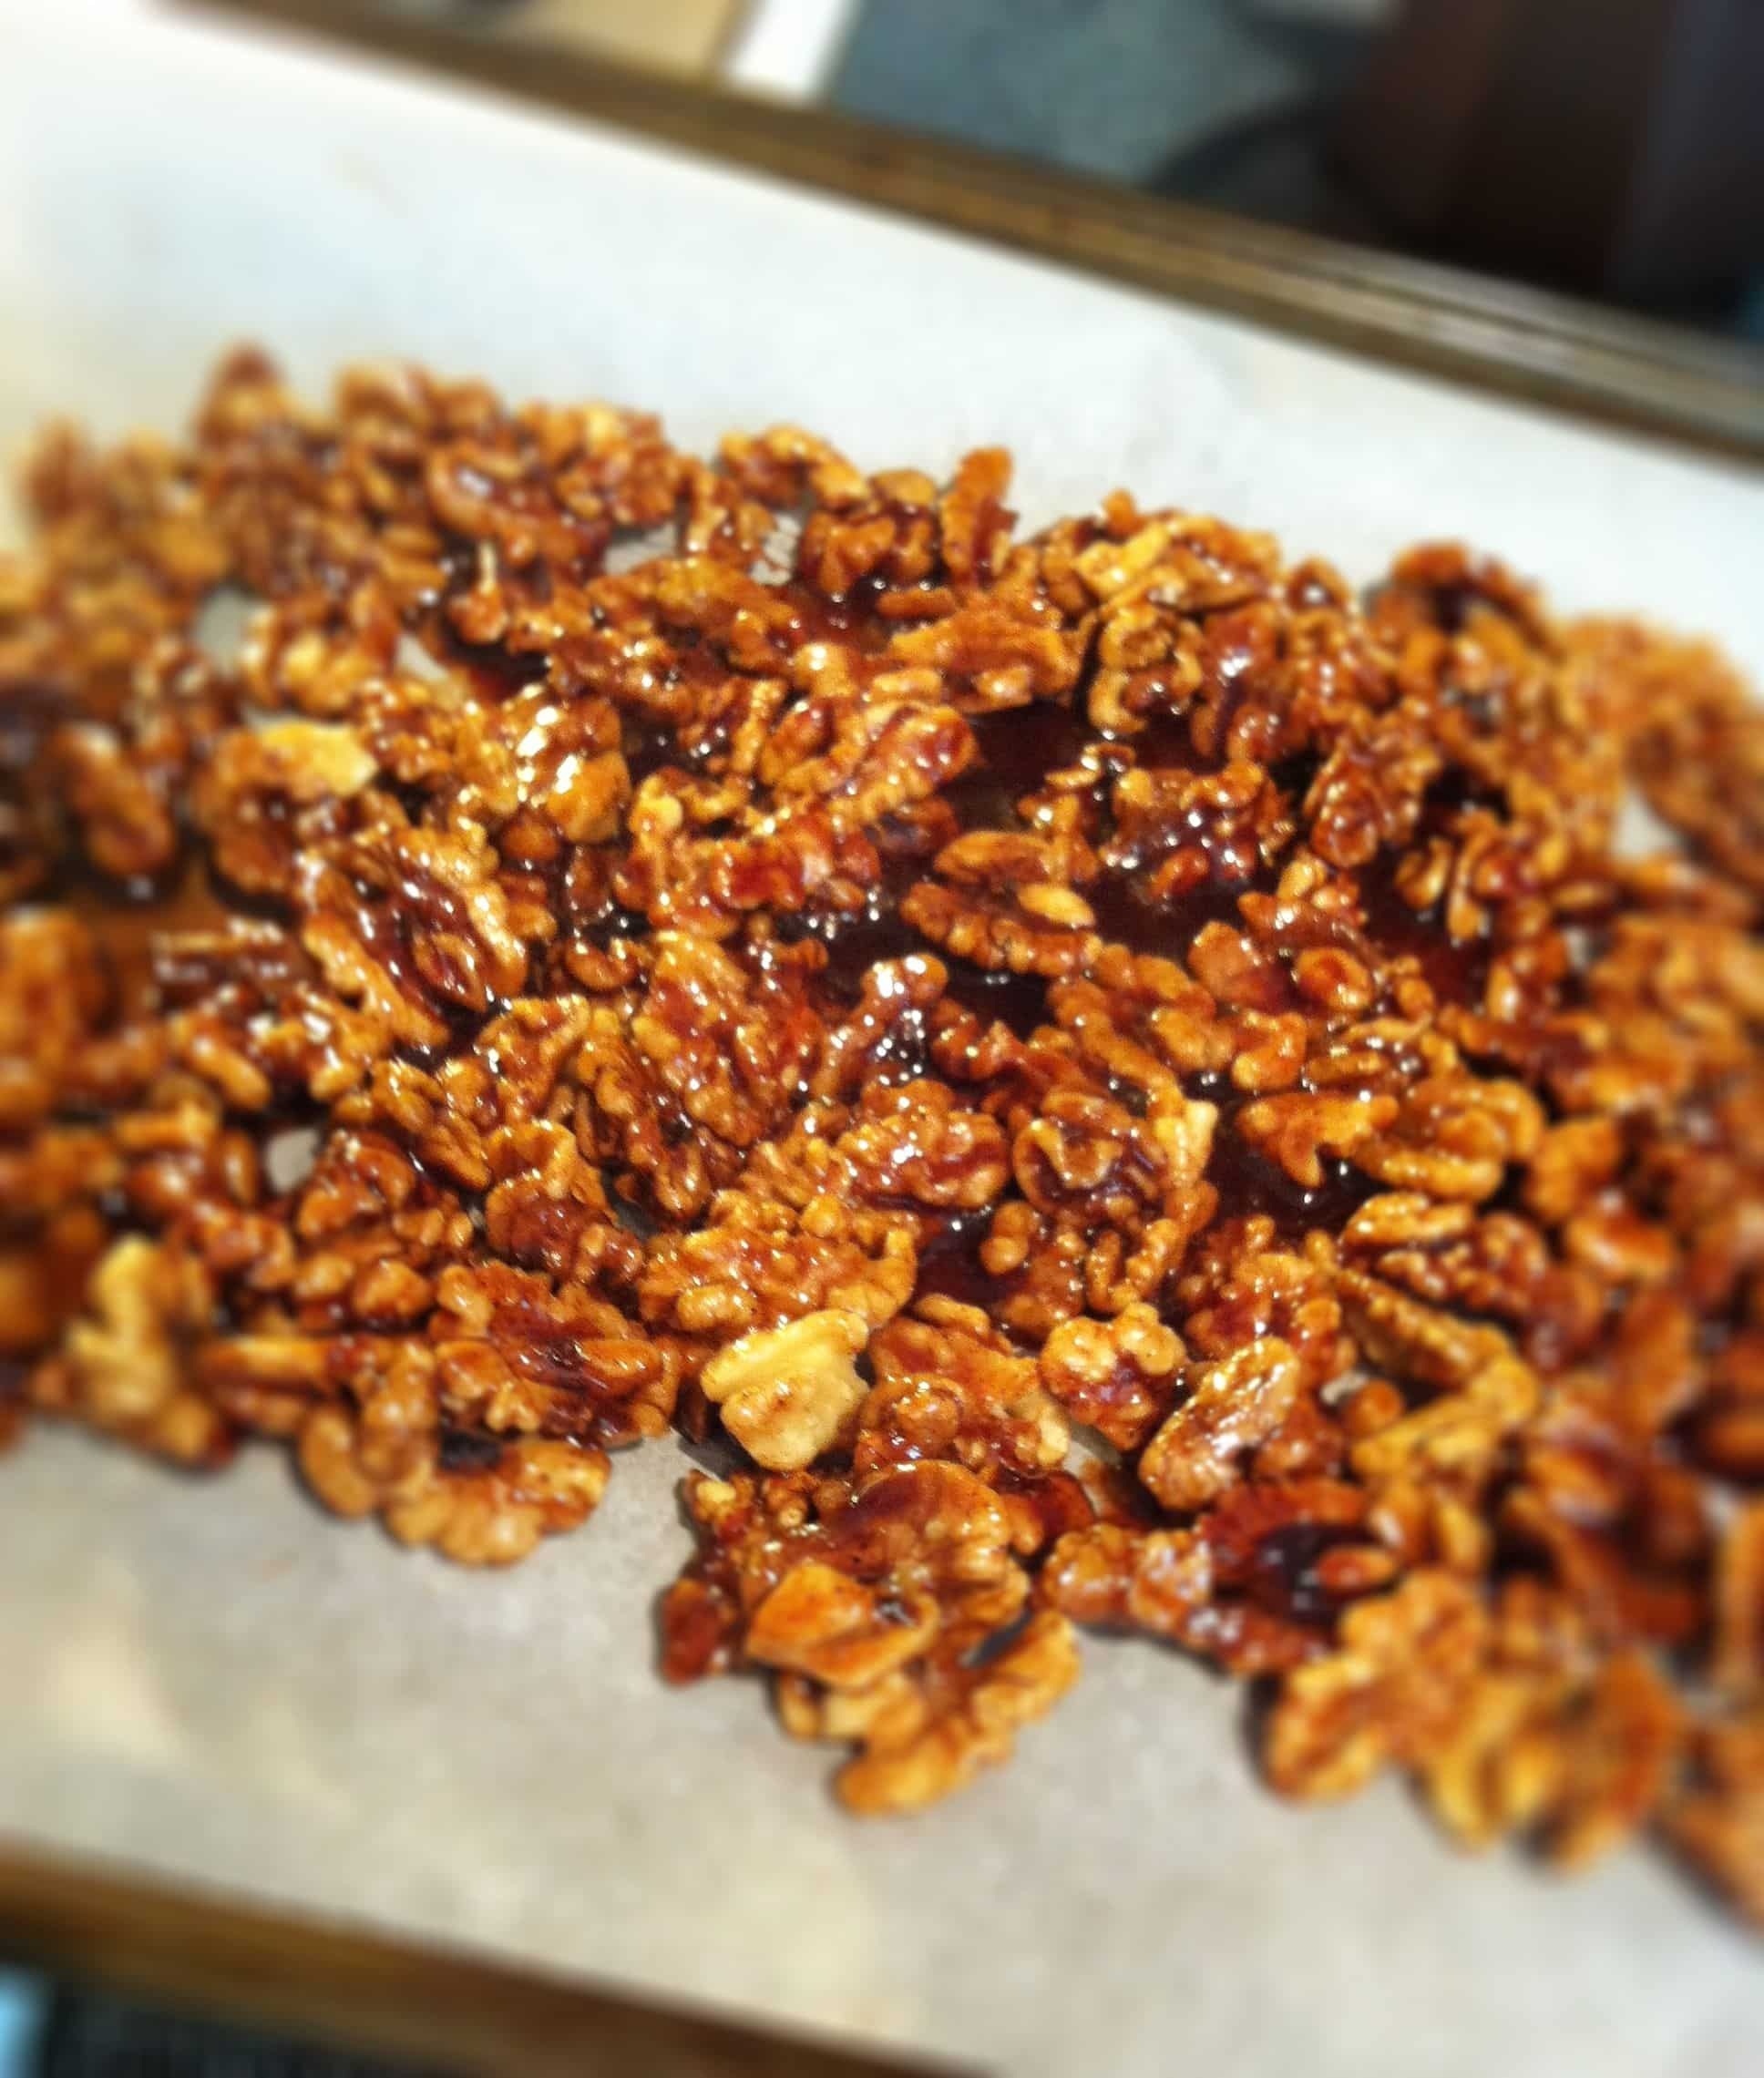 Spicy Sugared Walnuts